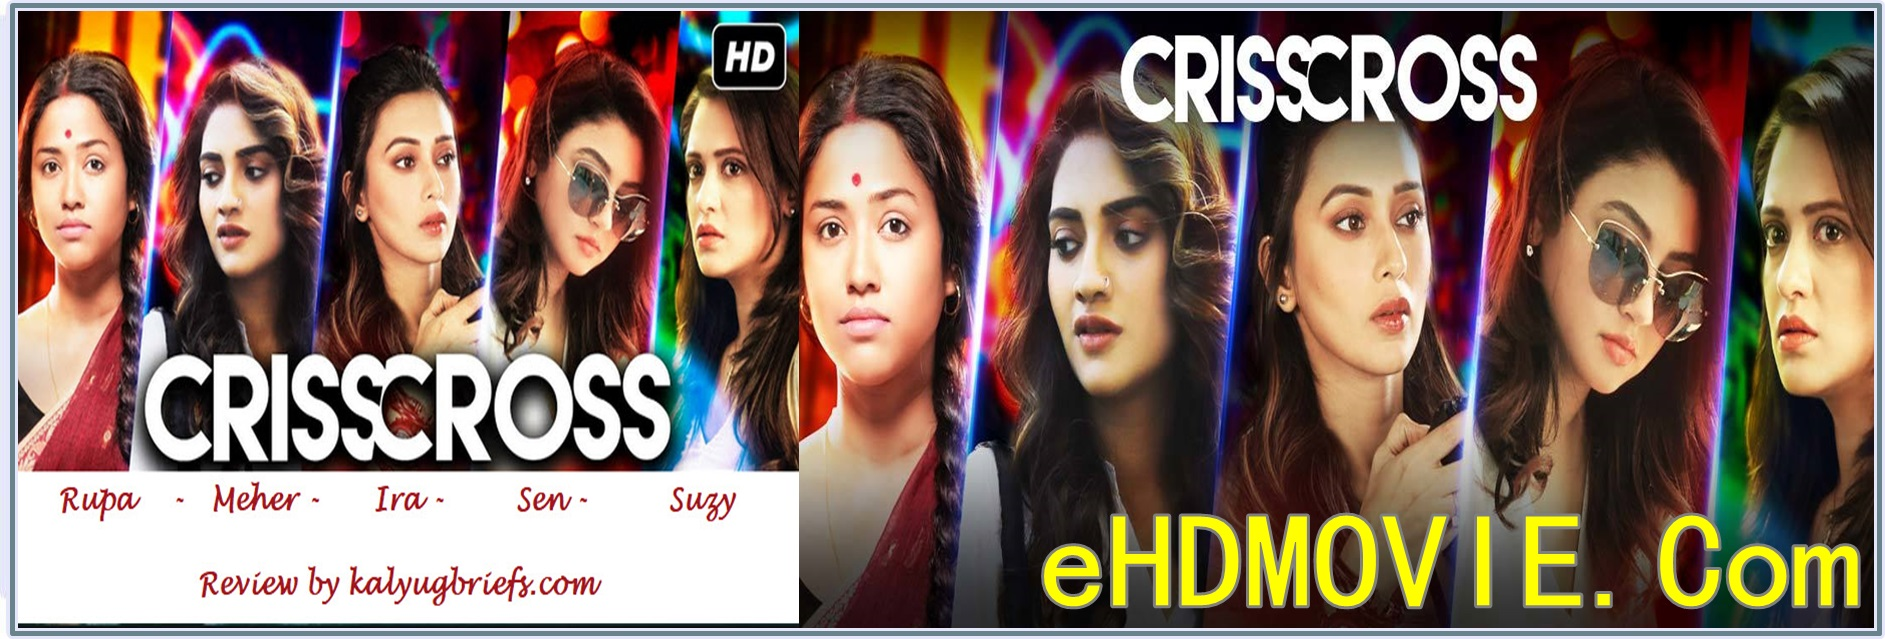 Crisscross 2018 Bengali Full Movie Original 480p - HEVC - 720p - 1080p ORG WEB-DL 300MB - 550MB - 850MB - 1.6GB